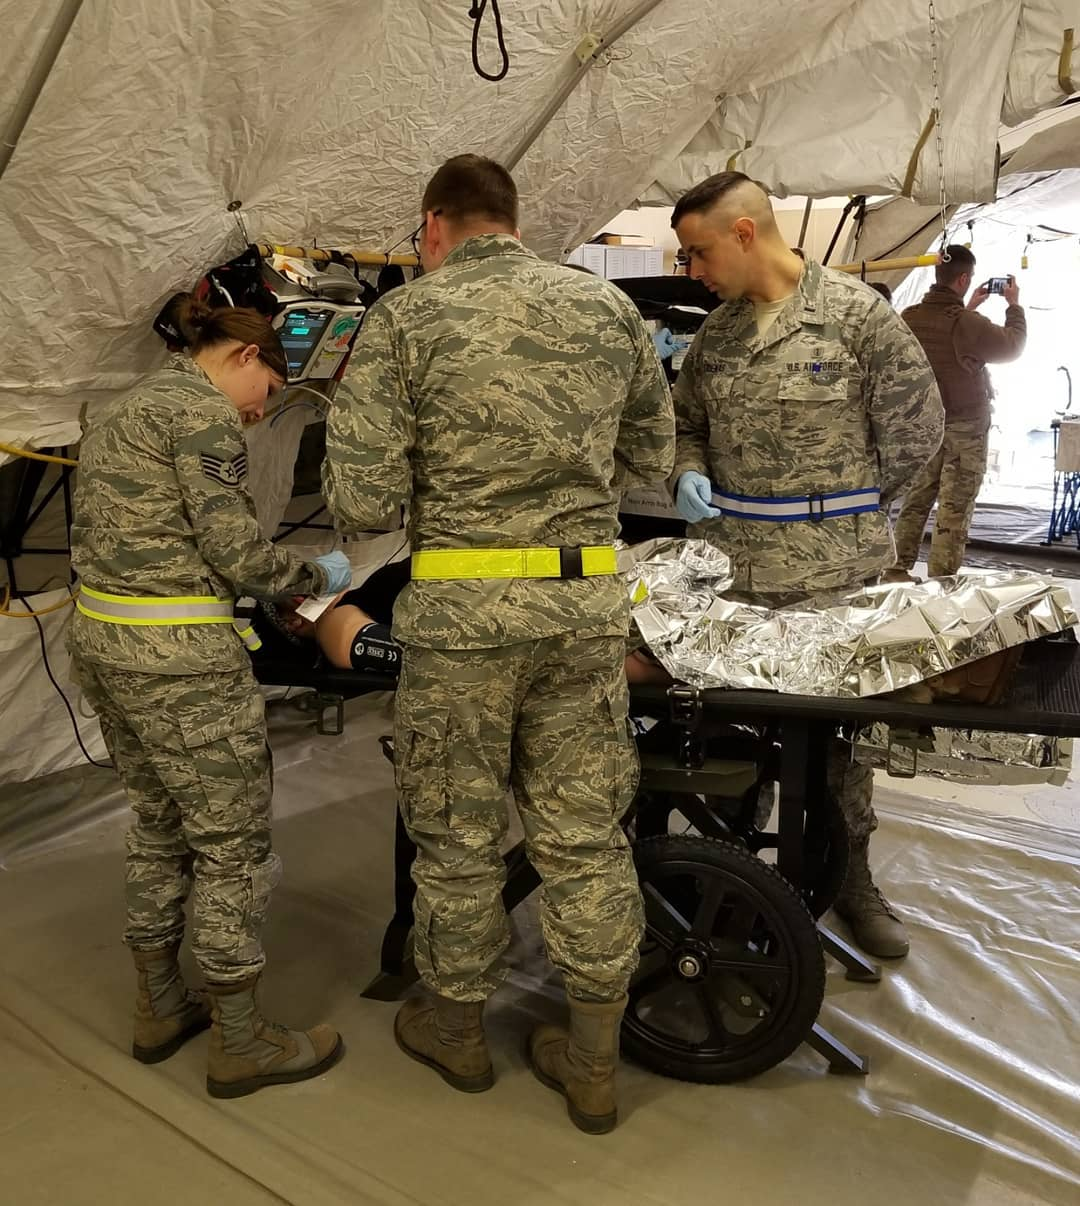 cbrn treatment 2.jpg